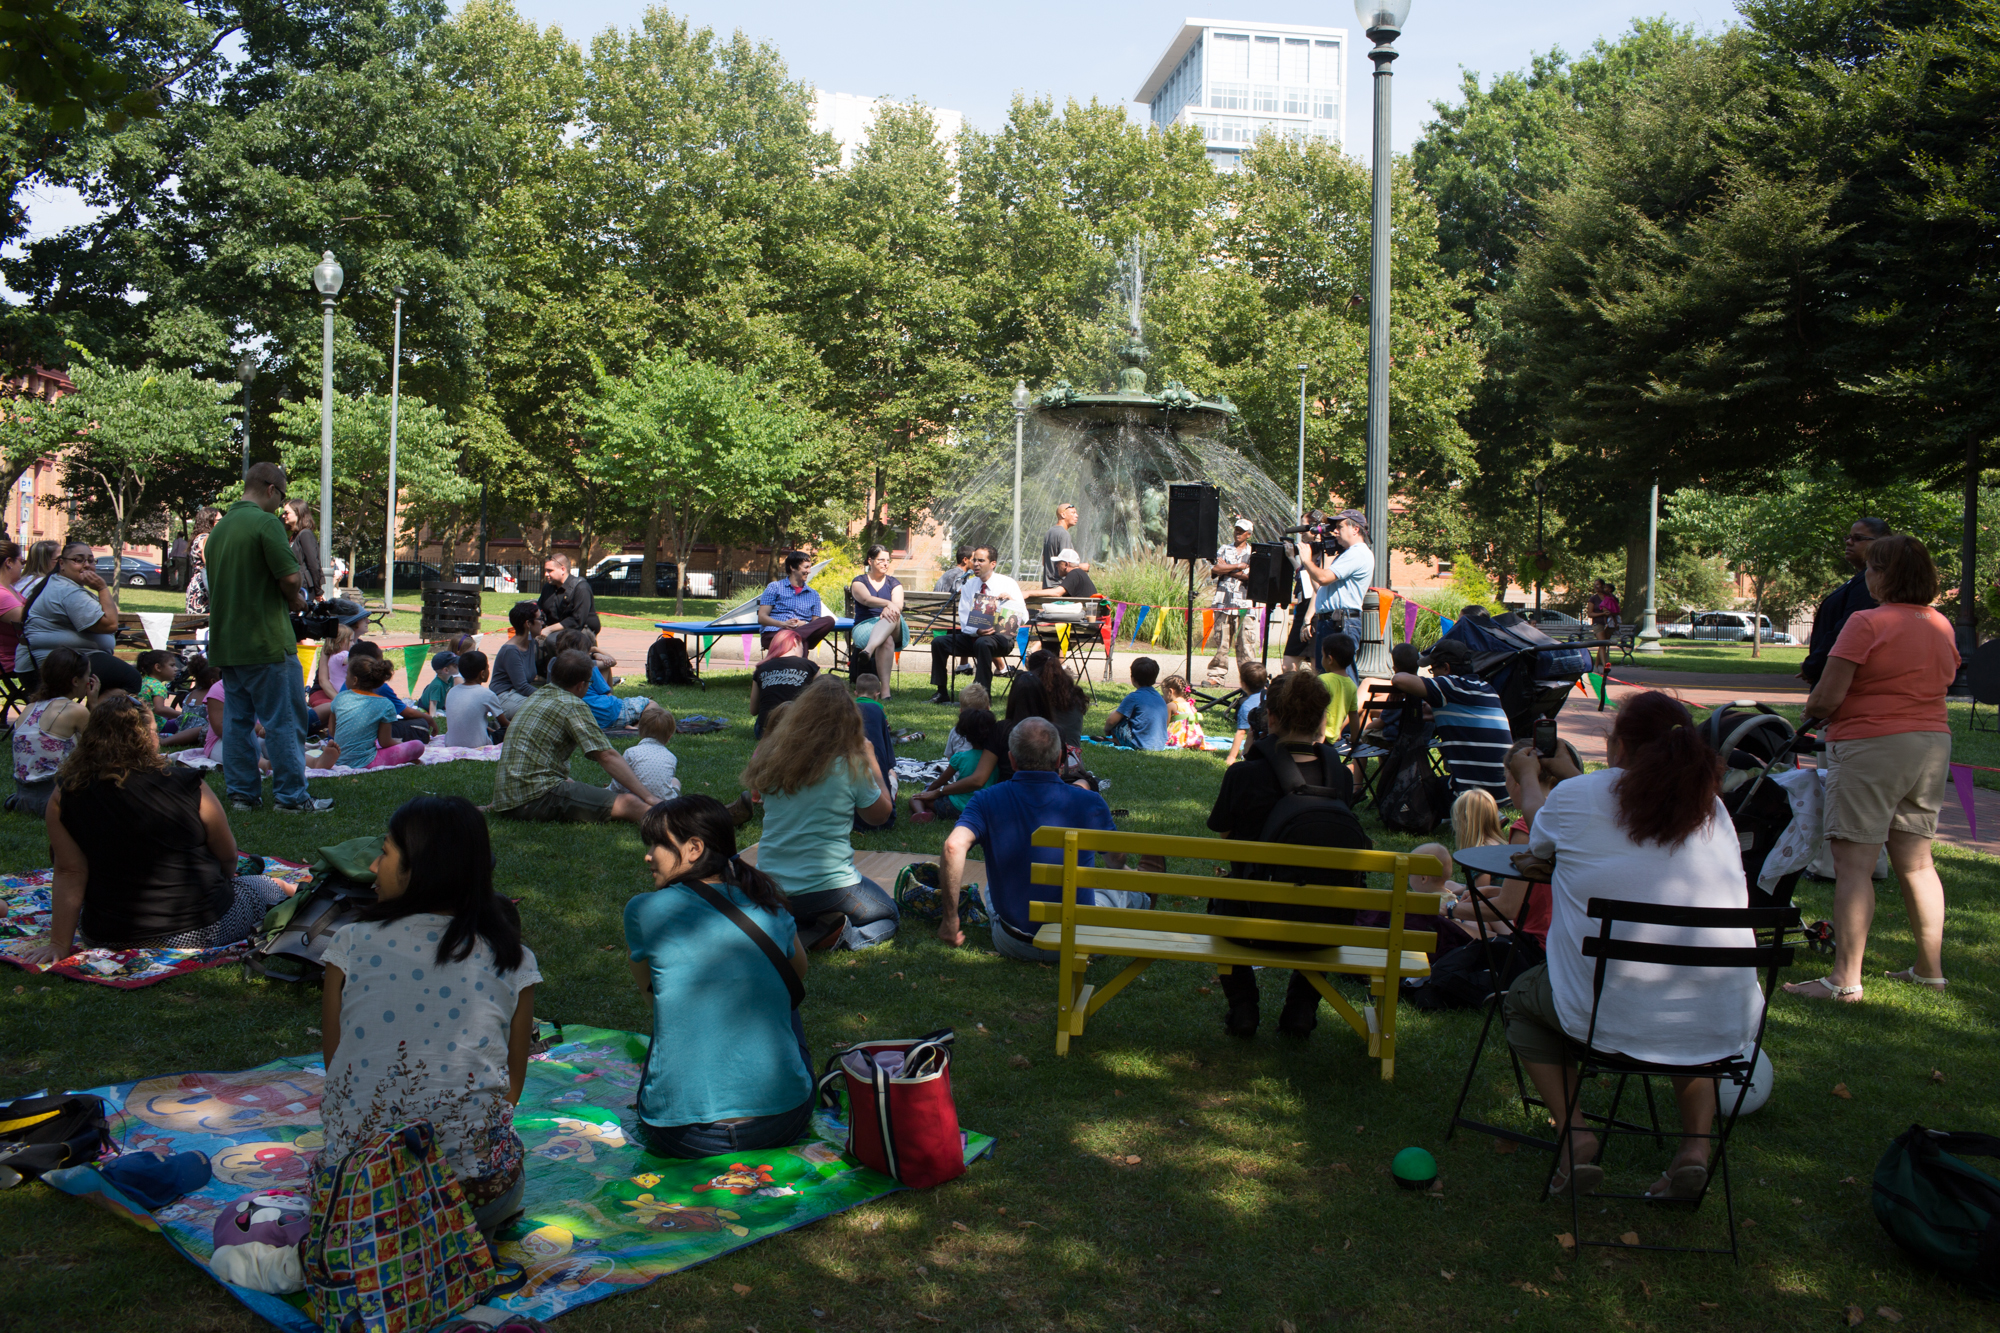 The Mayor of Providence is reading for kids during public happening on Kennedy Plaza. Foto (c) Project for Public Spaces